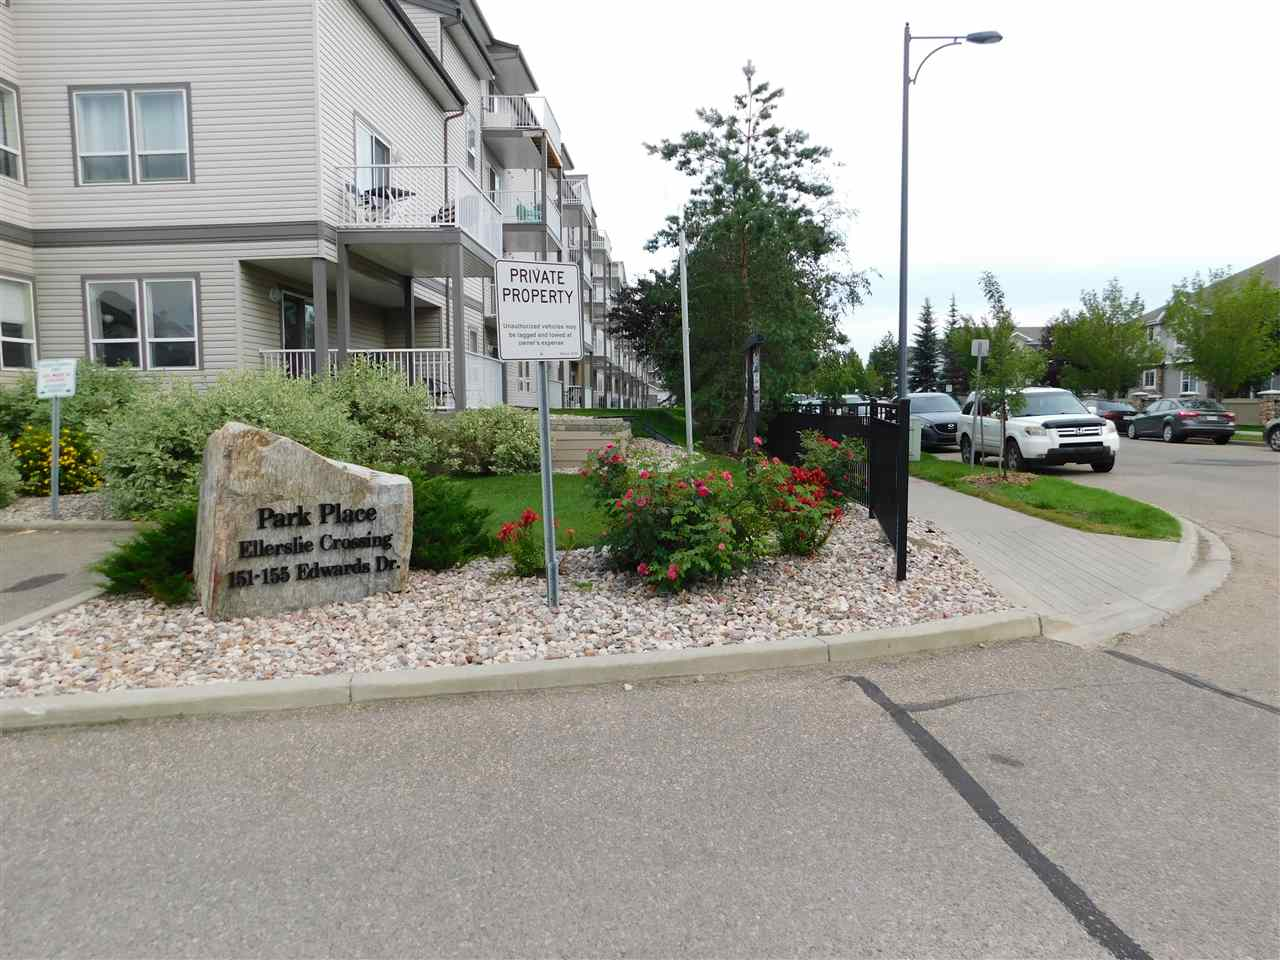 MLS® listing #E4168312 for sale located at 115 155 Edwards Drive SW